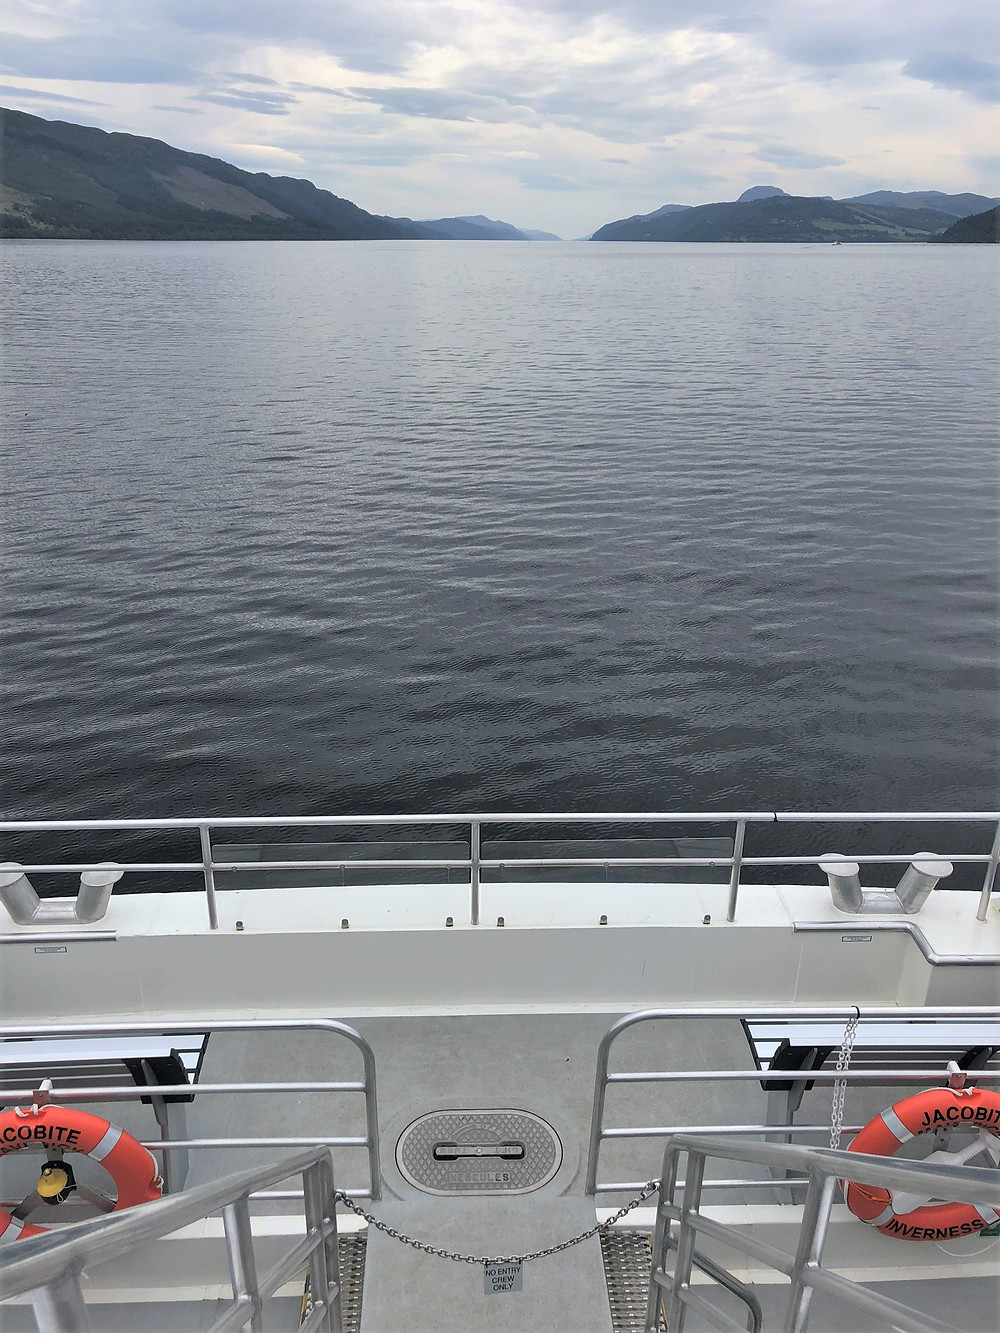 Cloudy day but still water on Loch Ness